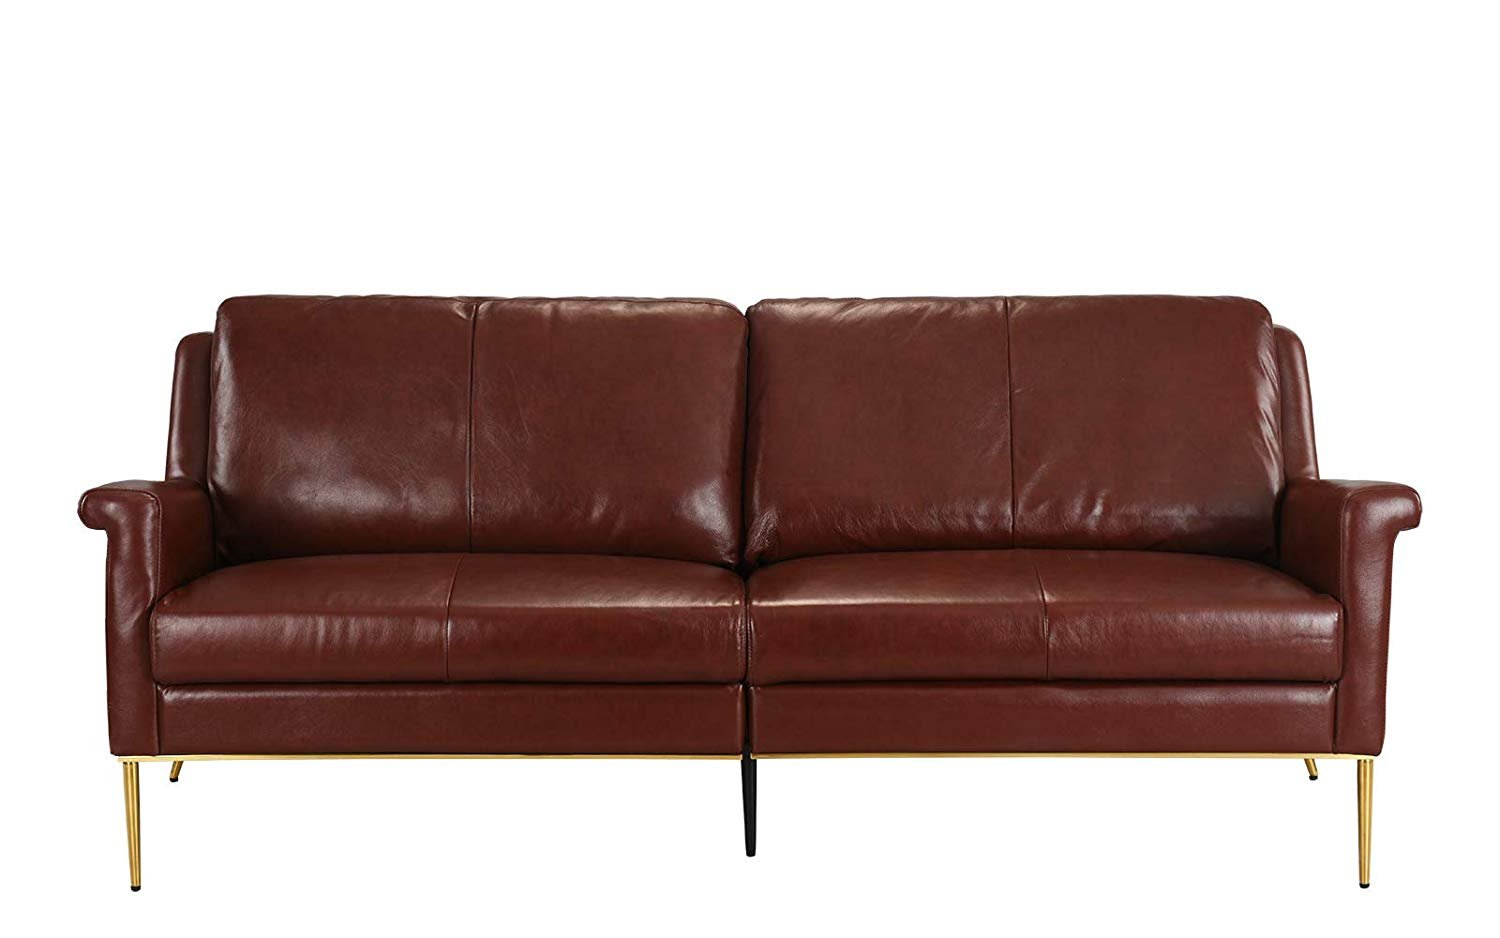 Details About Mid Century Leather Sofa Living Room Couch Leather Match Fabric Brown